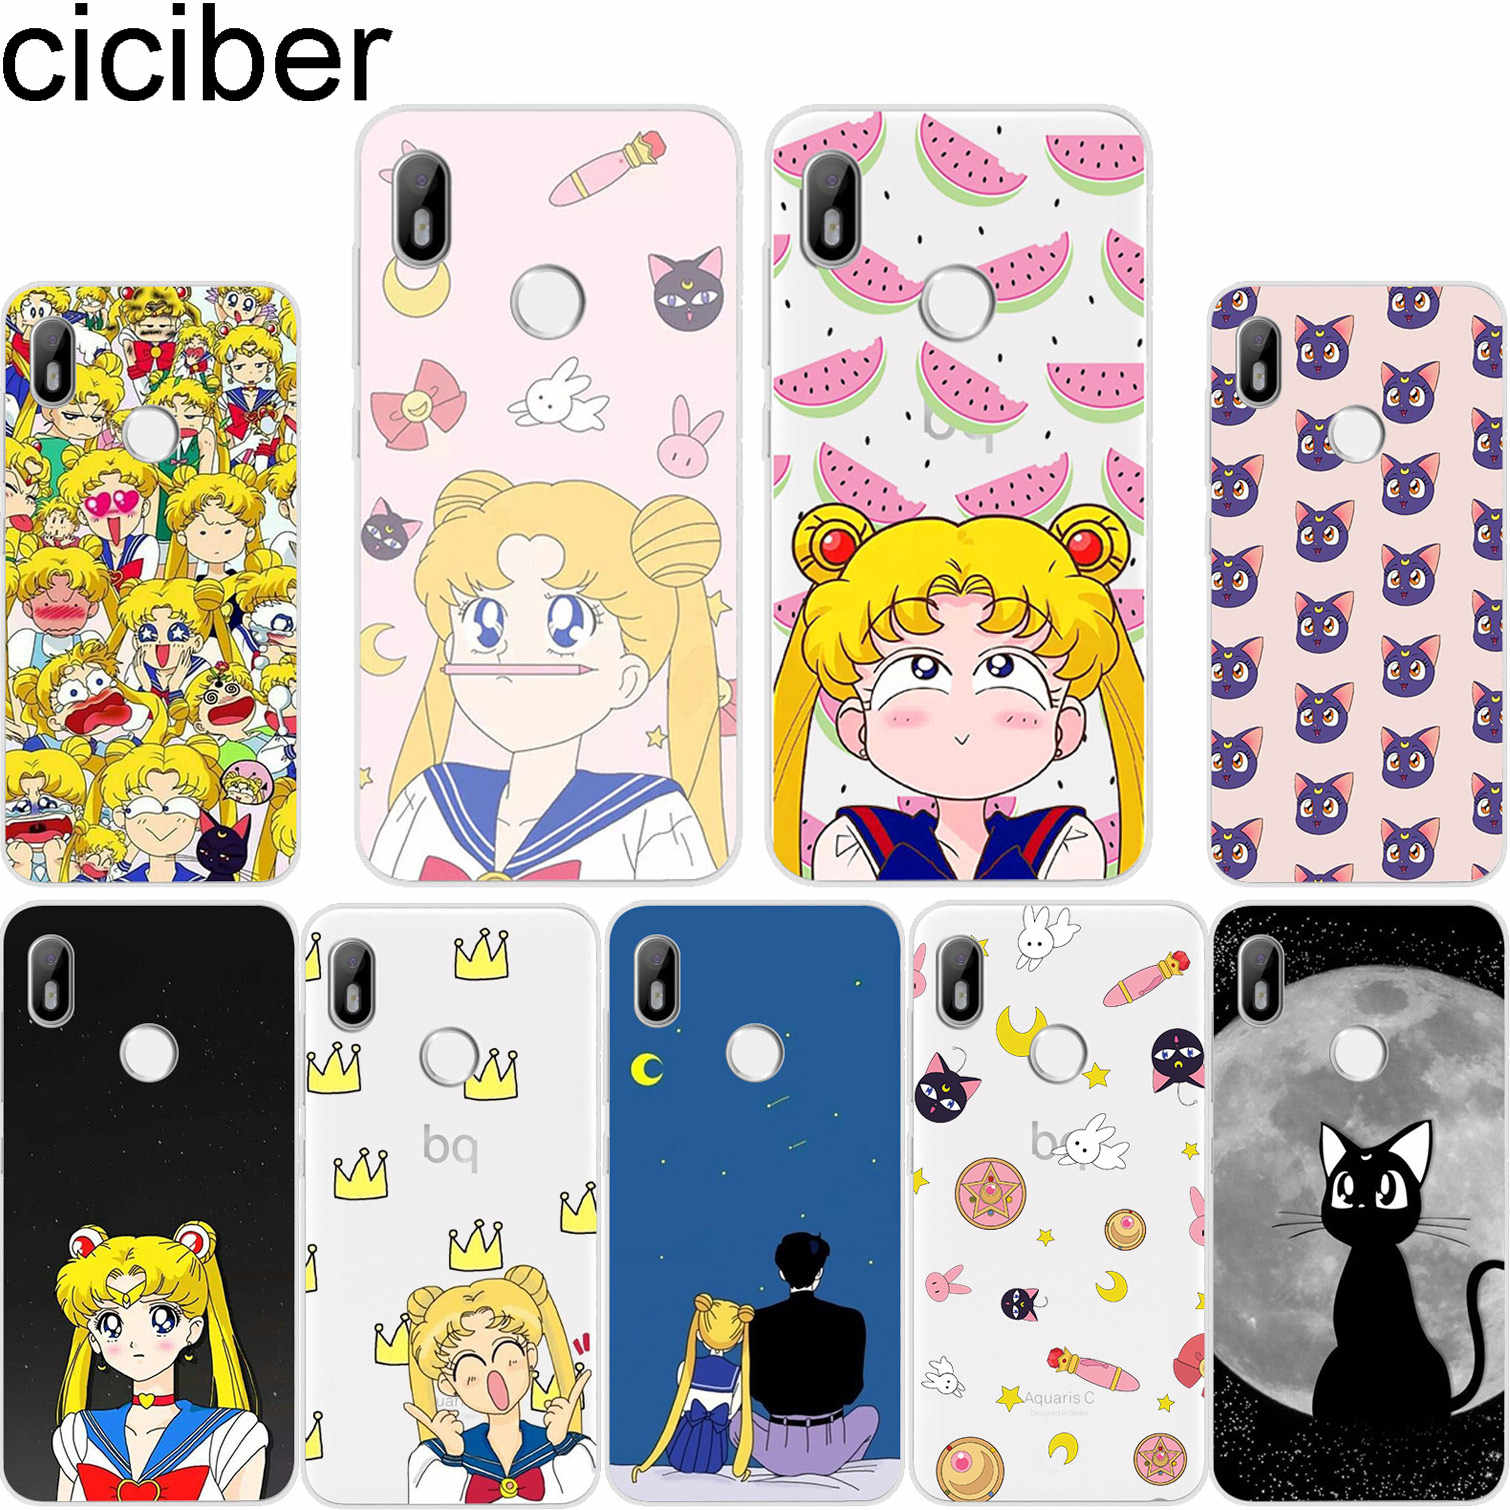 ciciber Cute For BQ Aquaris C U2 U X5 V VS X2 X Lite Pro Plus E5 s E4.5 M5 M5.5 M4.5 Back Cover Clear TPU Phone Case Sailor Moon